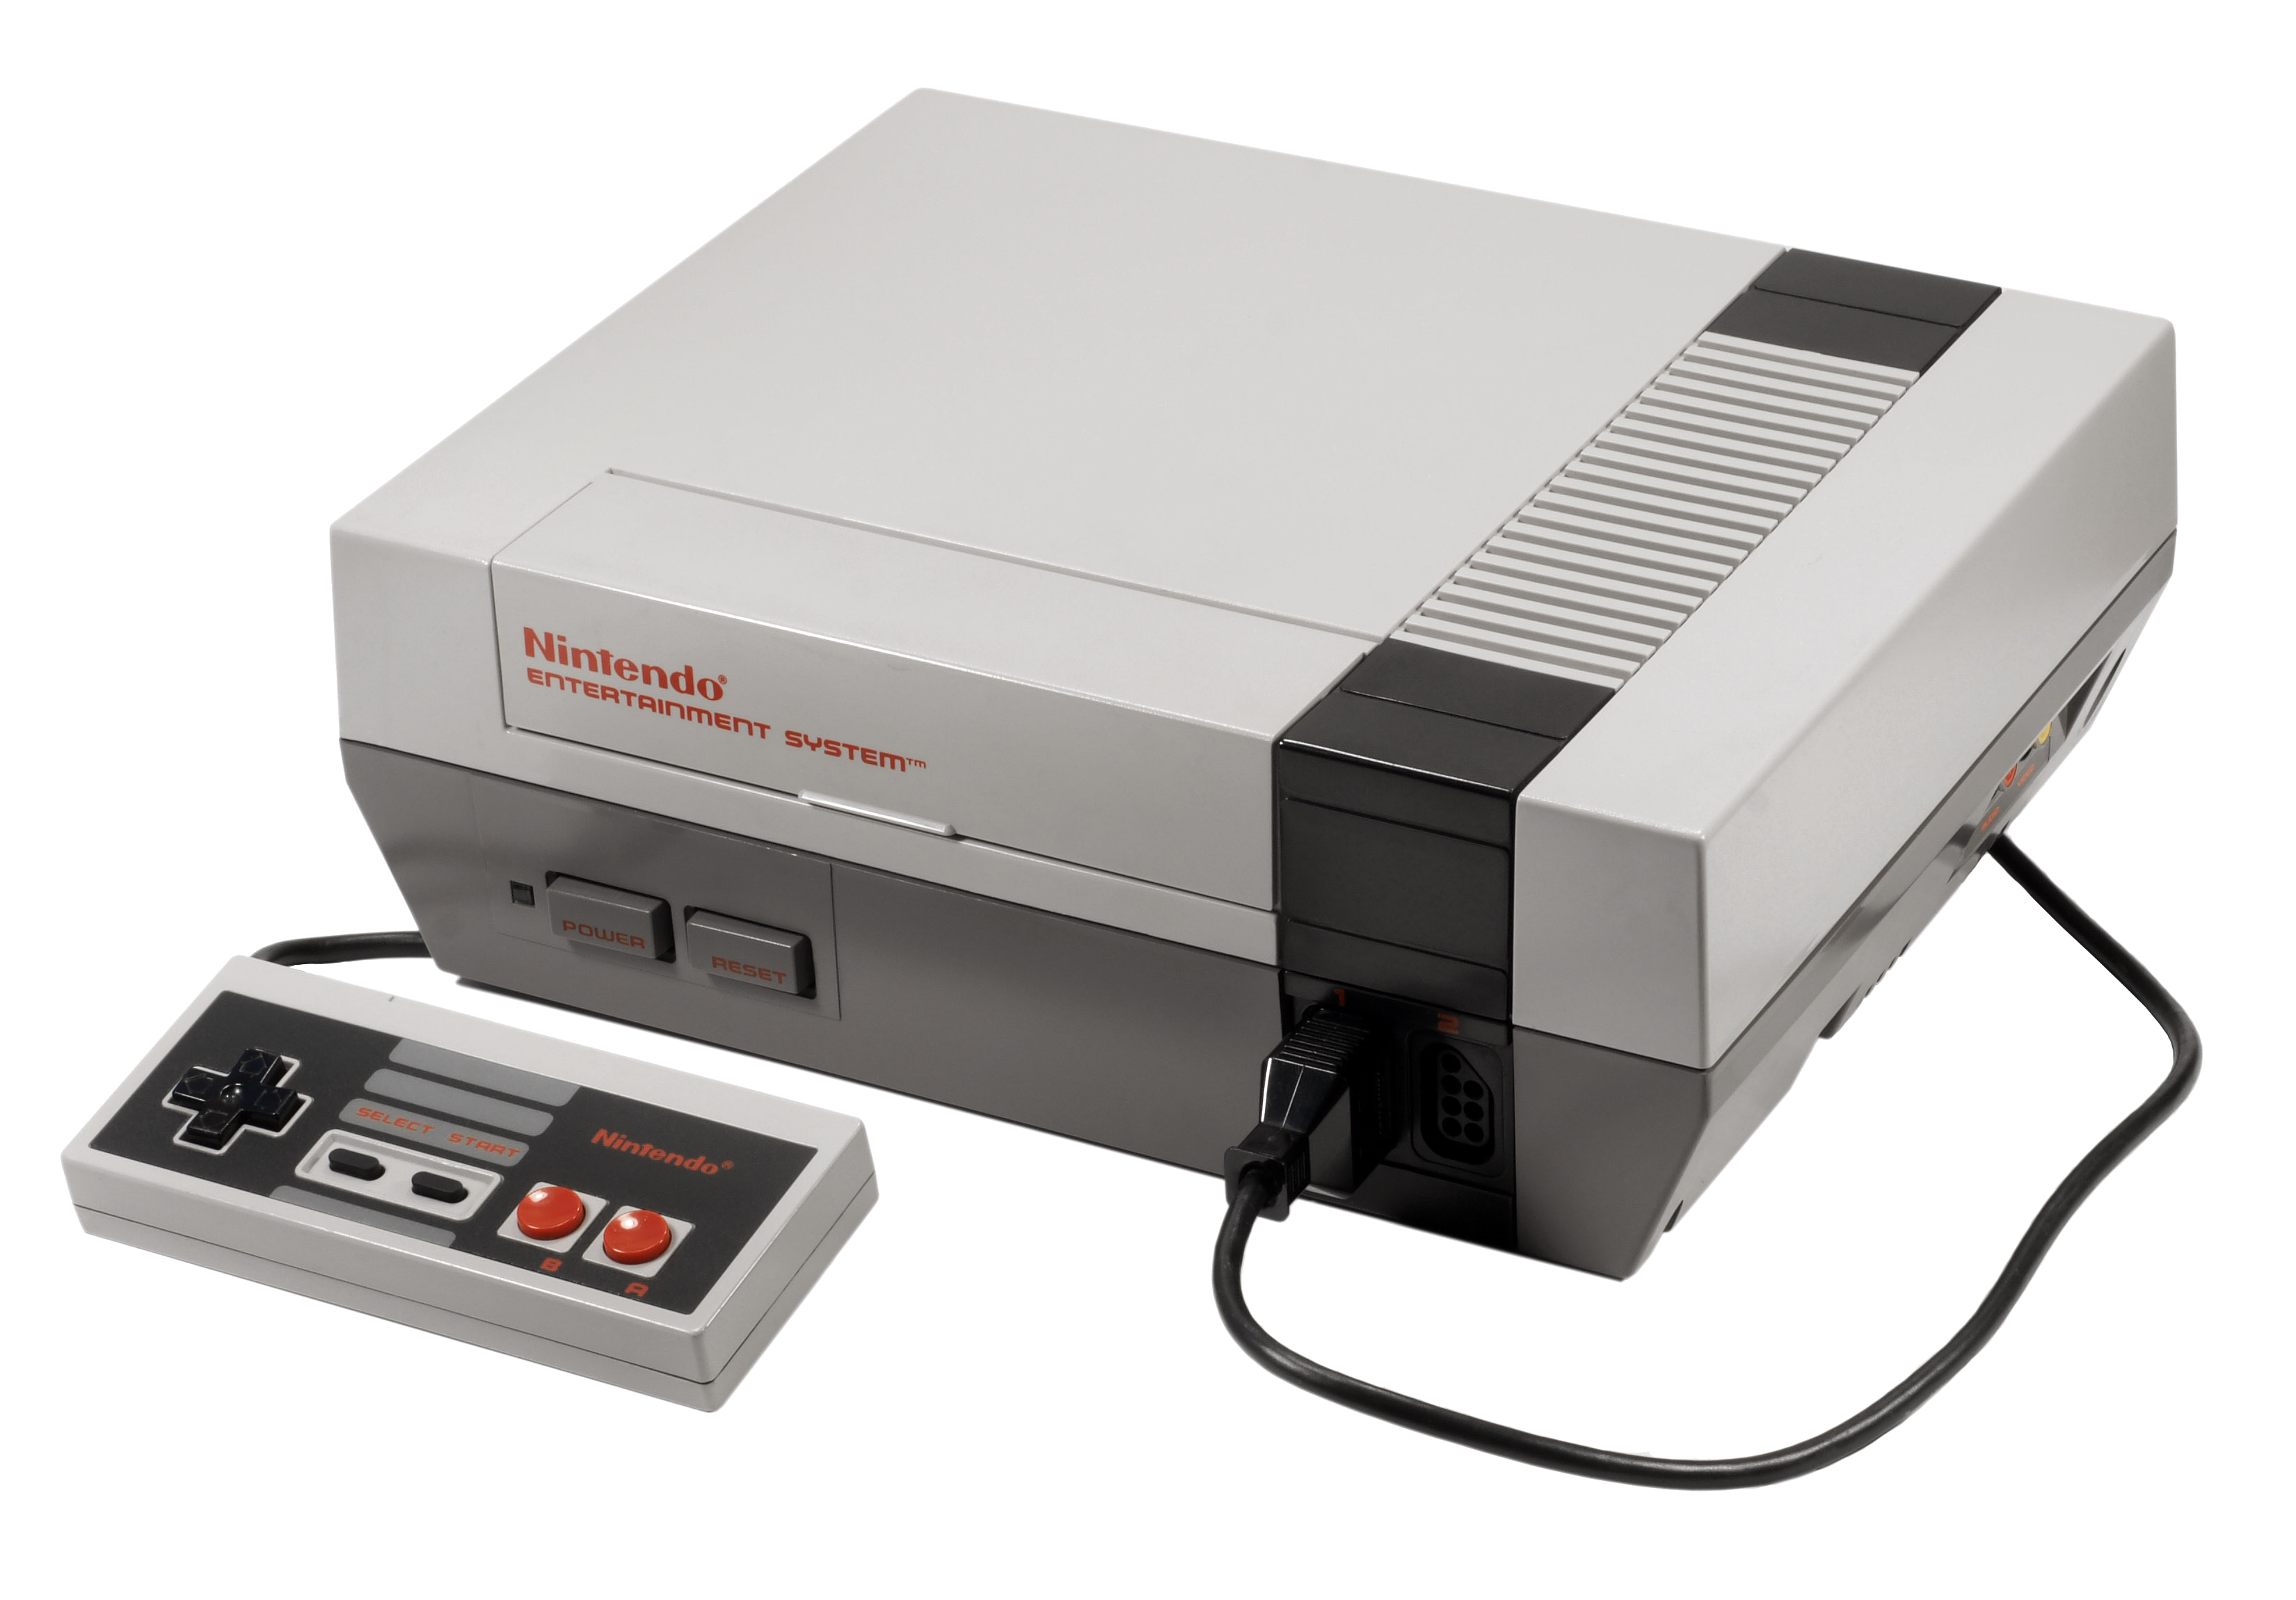 nes-png-nintendo-entertainment-system-console-png-3300.png